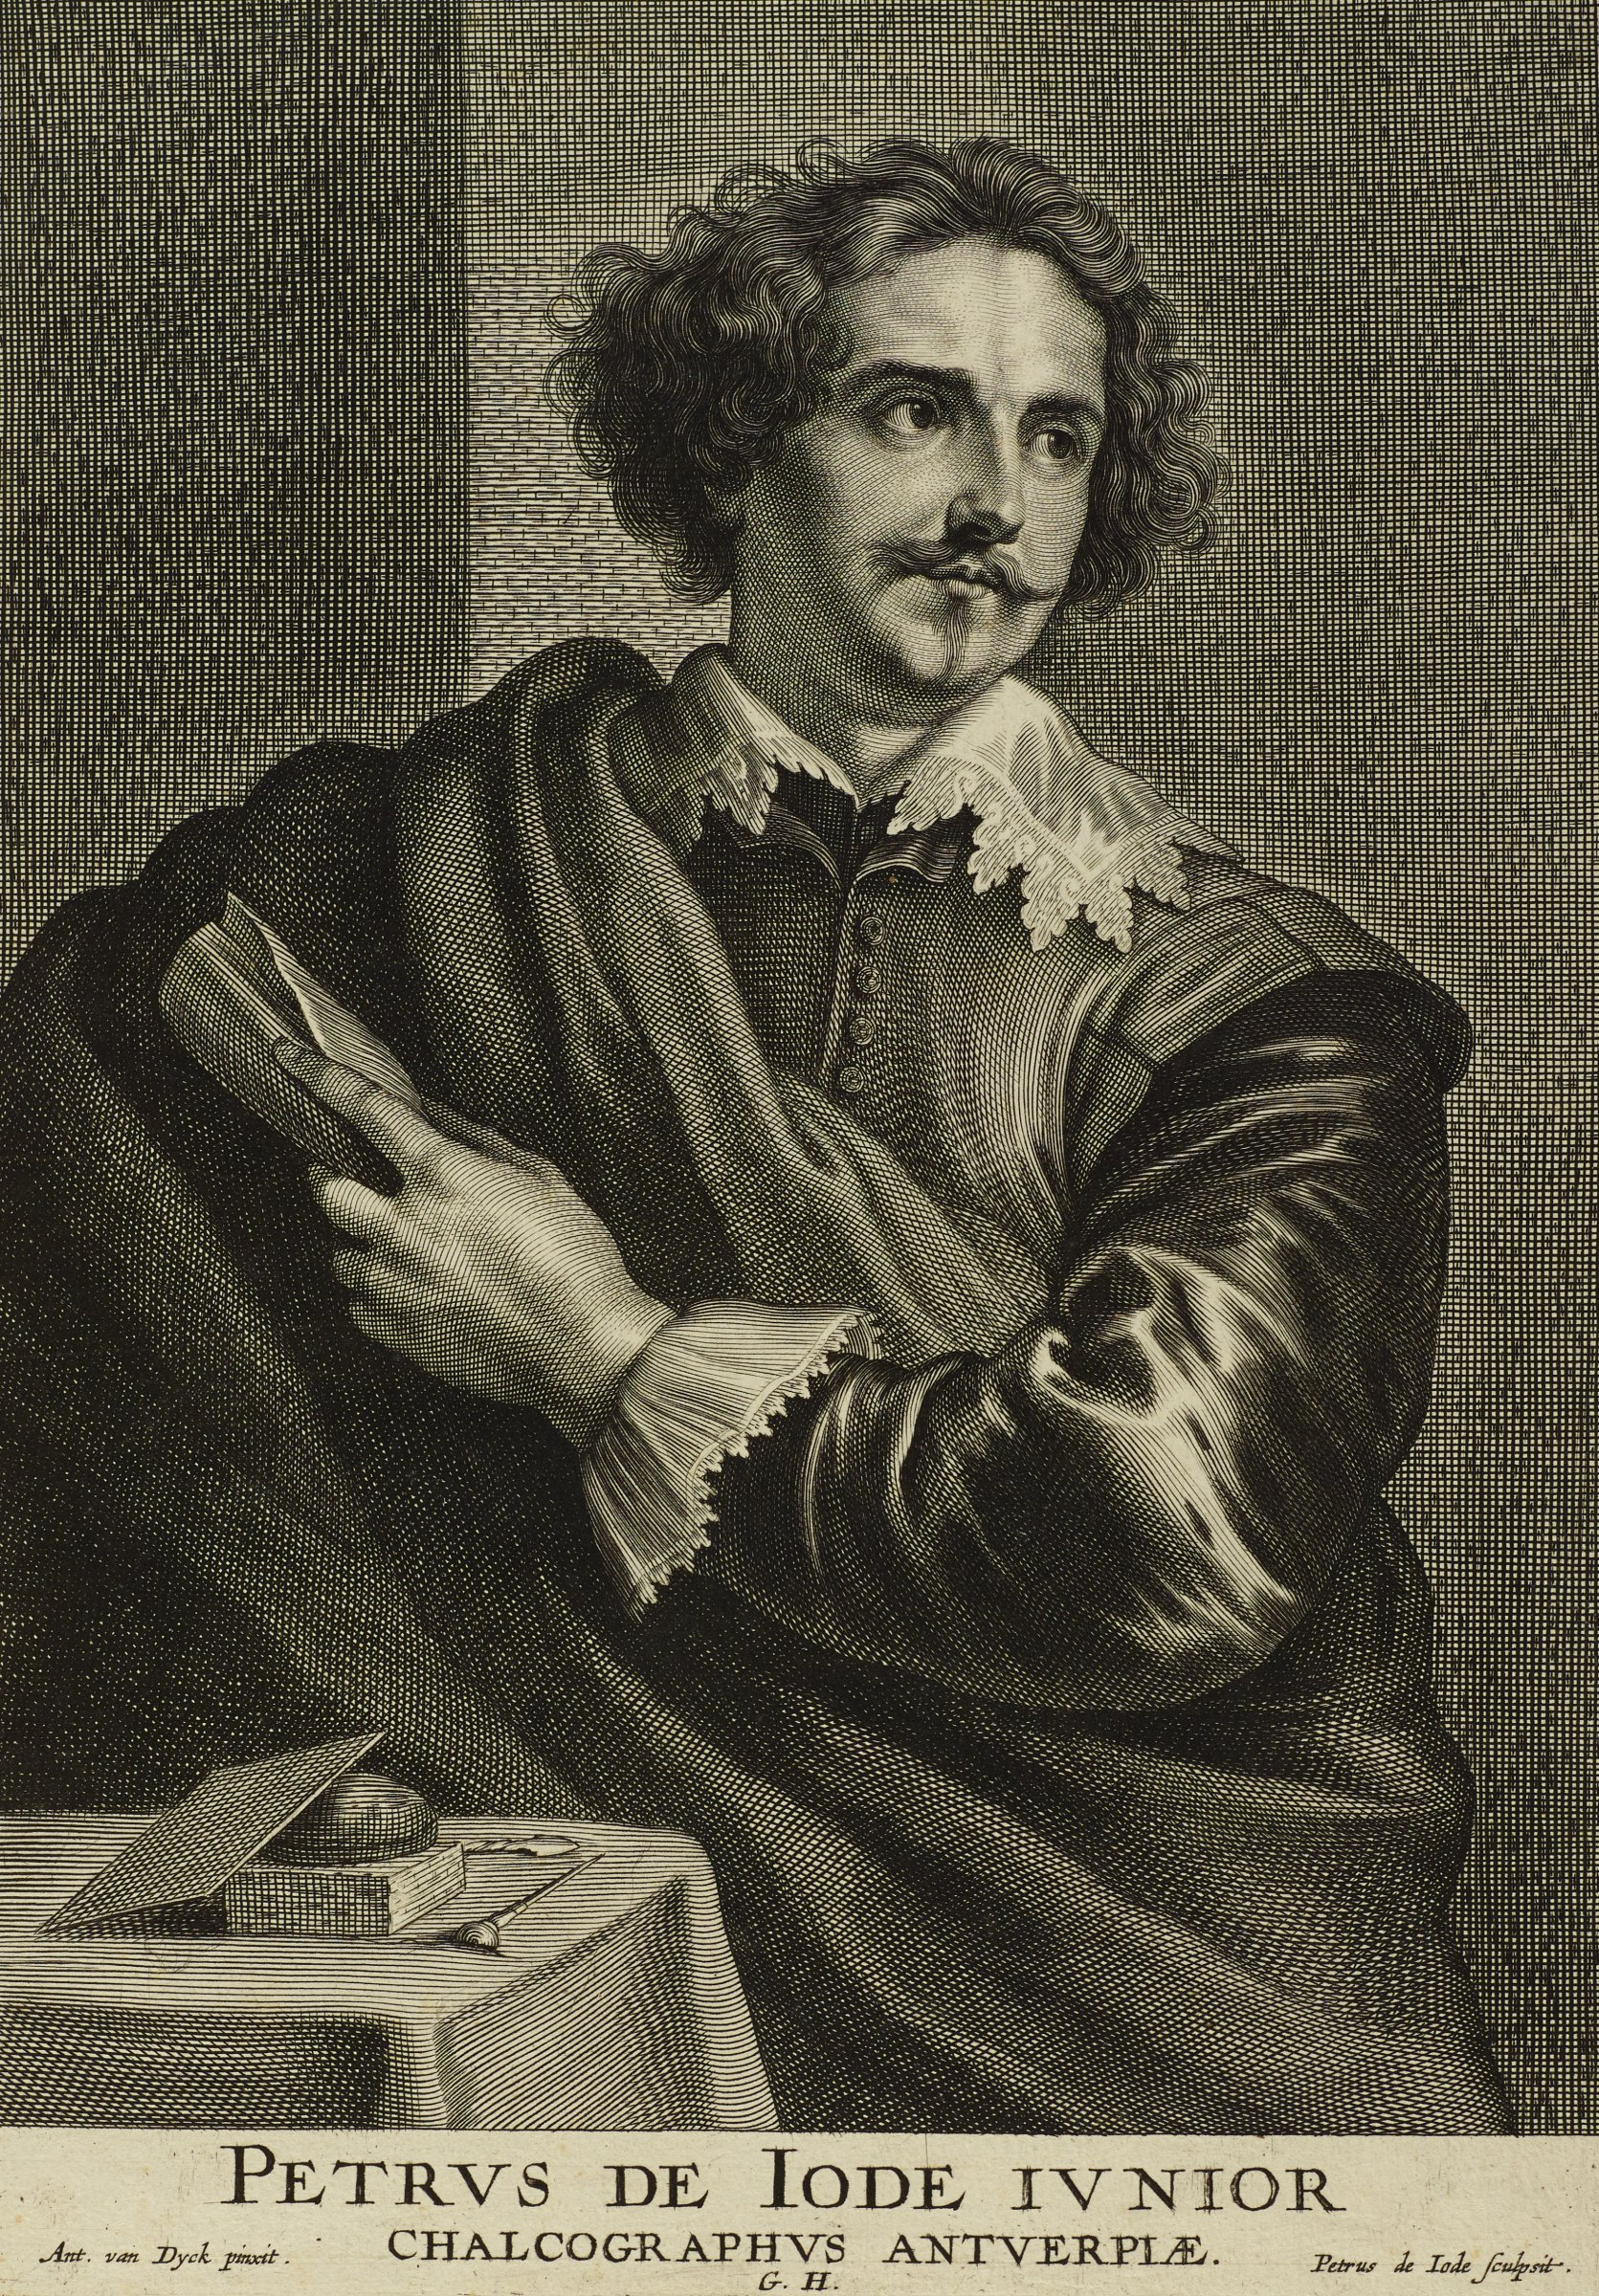 Pieter de Jode, an engraver, stands in front of a table with engraving tools sitting upon it. He holds his left arm across his body. In his left hand is a rolled piece of cloth or paper. He looks slightly to the proper left. This image is from the Gillis Hendricx edition of the Iconography (Icones Principum Virorum Doctorum, Pictorum Chalcographorum Statuorum nec non Amatorum Pictoriae Artis Numero Centum), 1632-44.